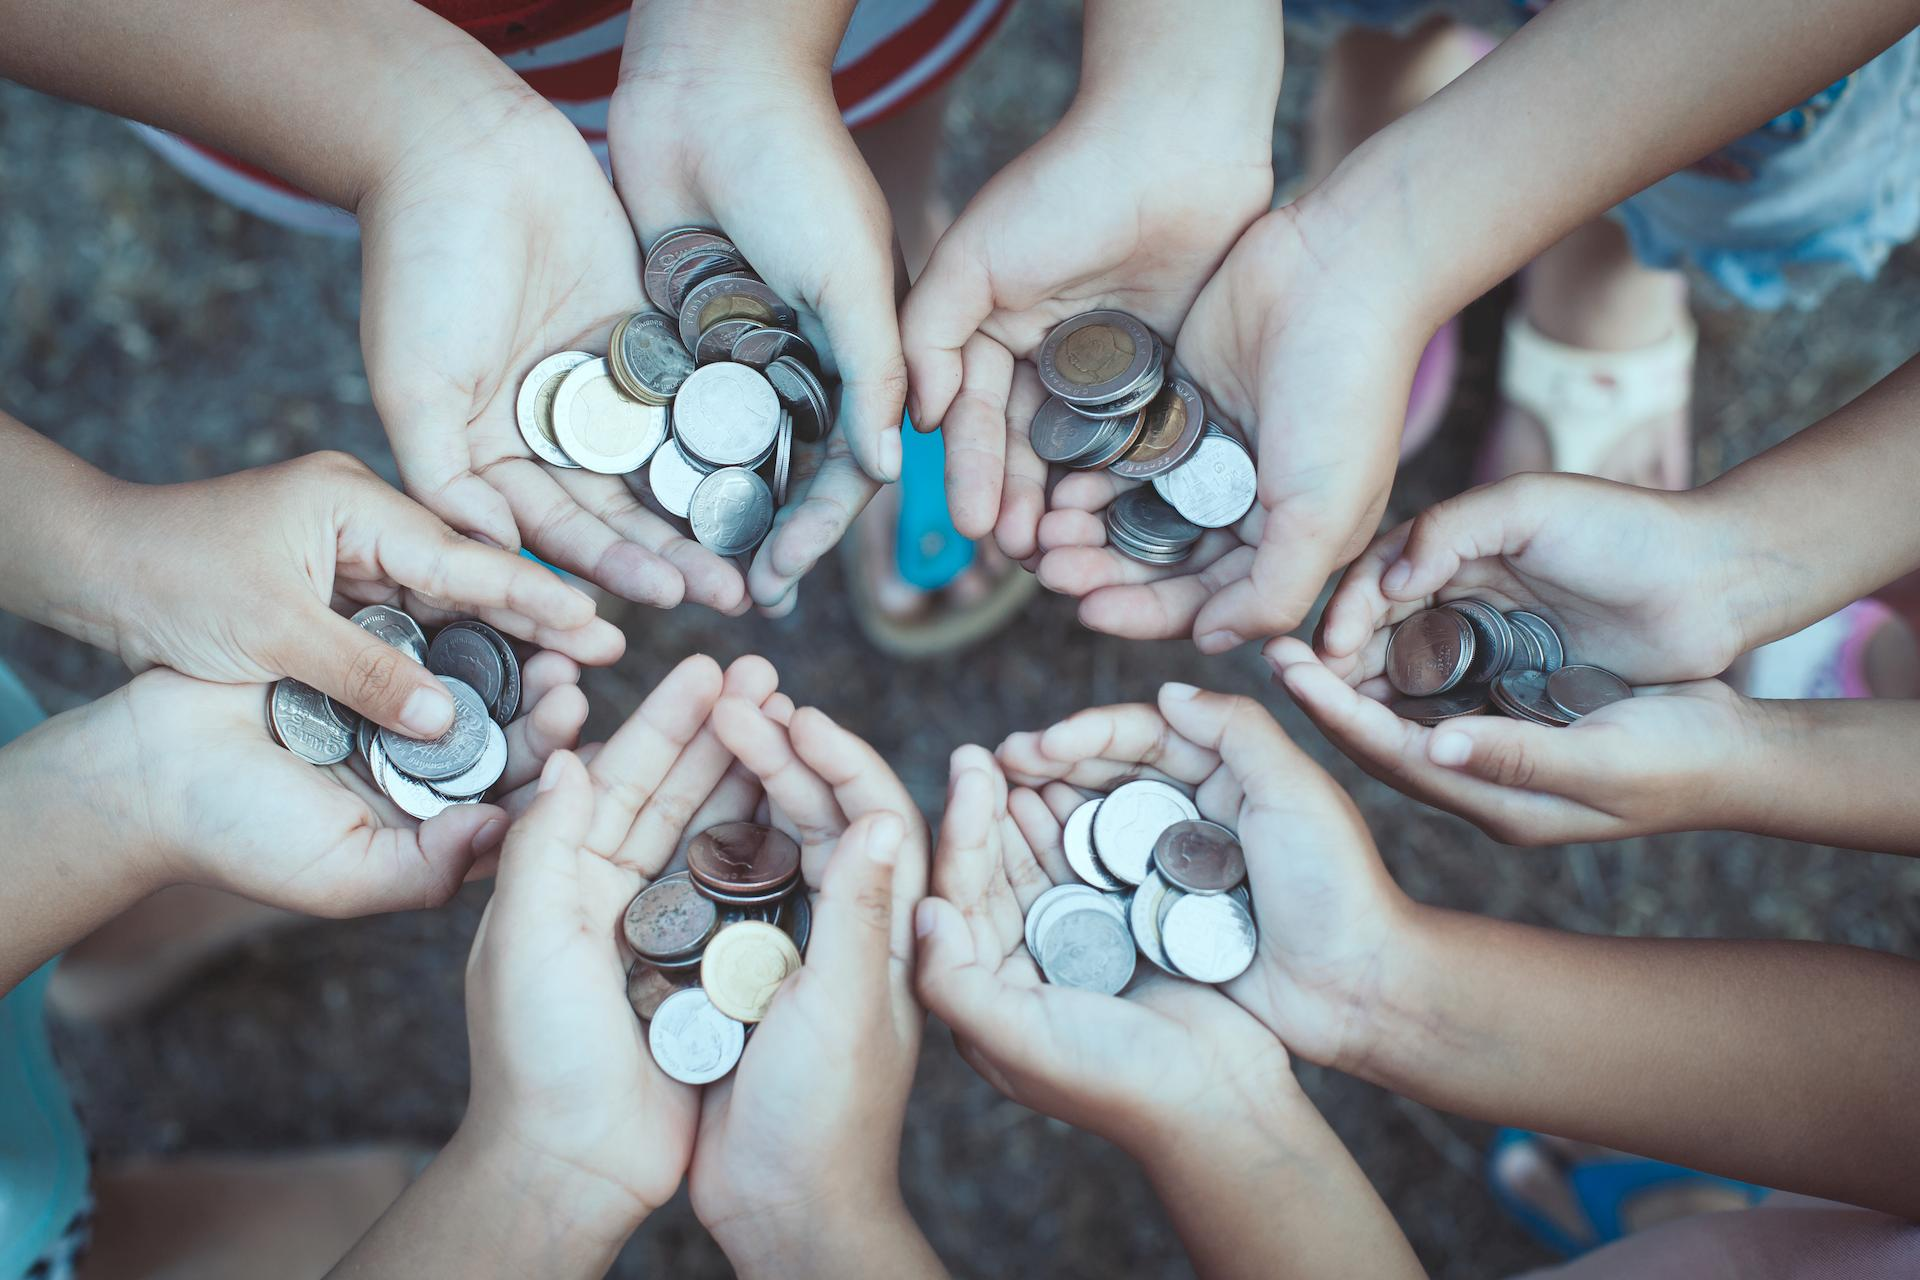 Group of people holding coins in hands